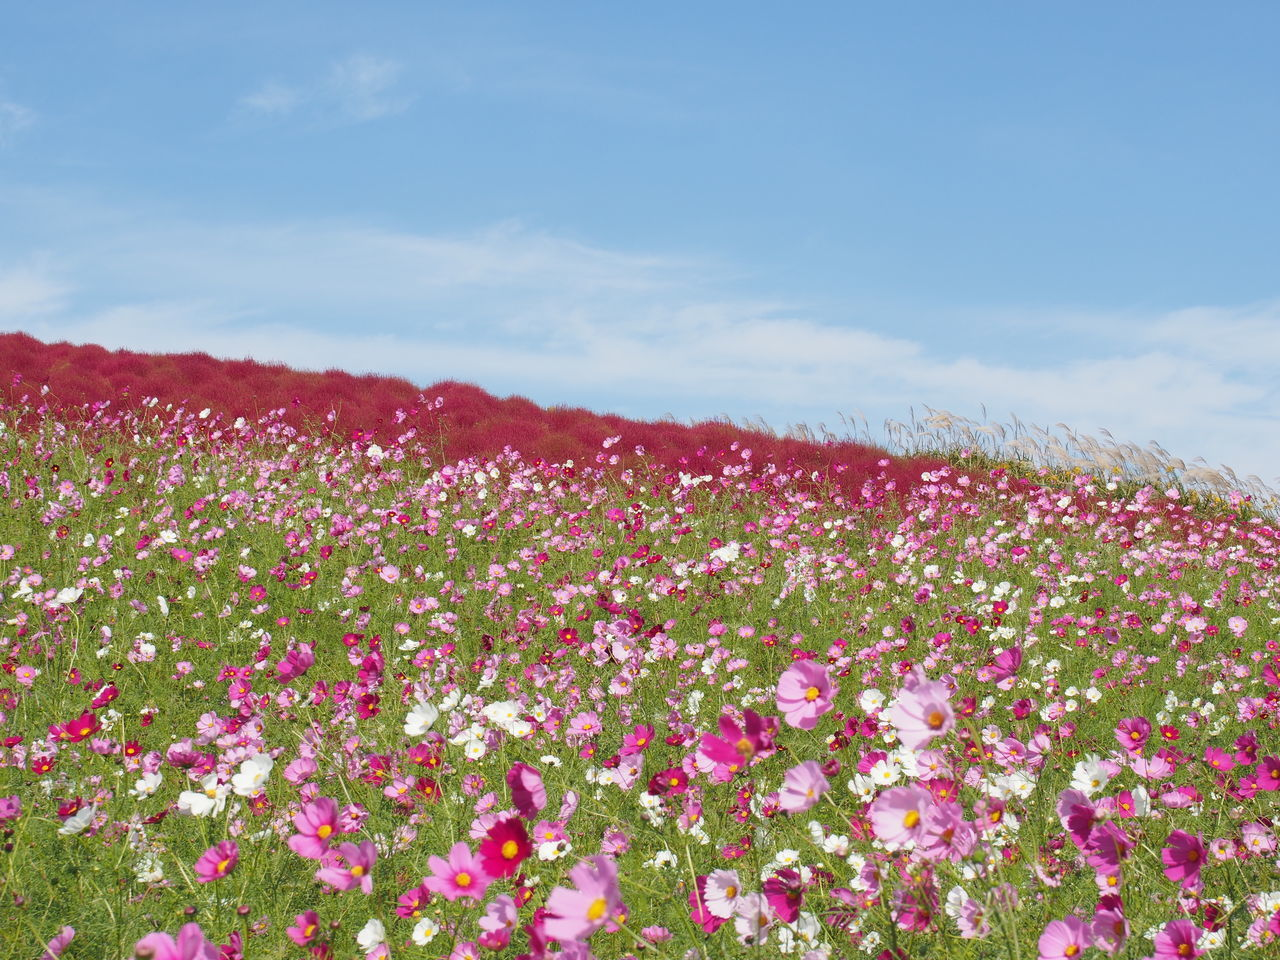 Pink Flowering Plants Growing On Field Against Sky